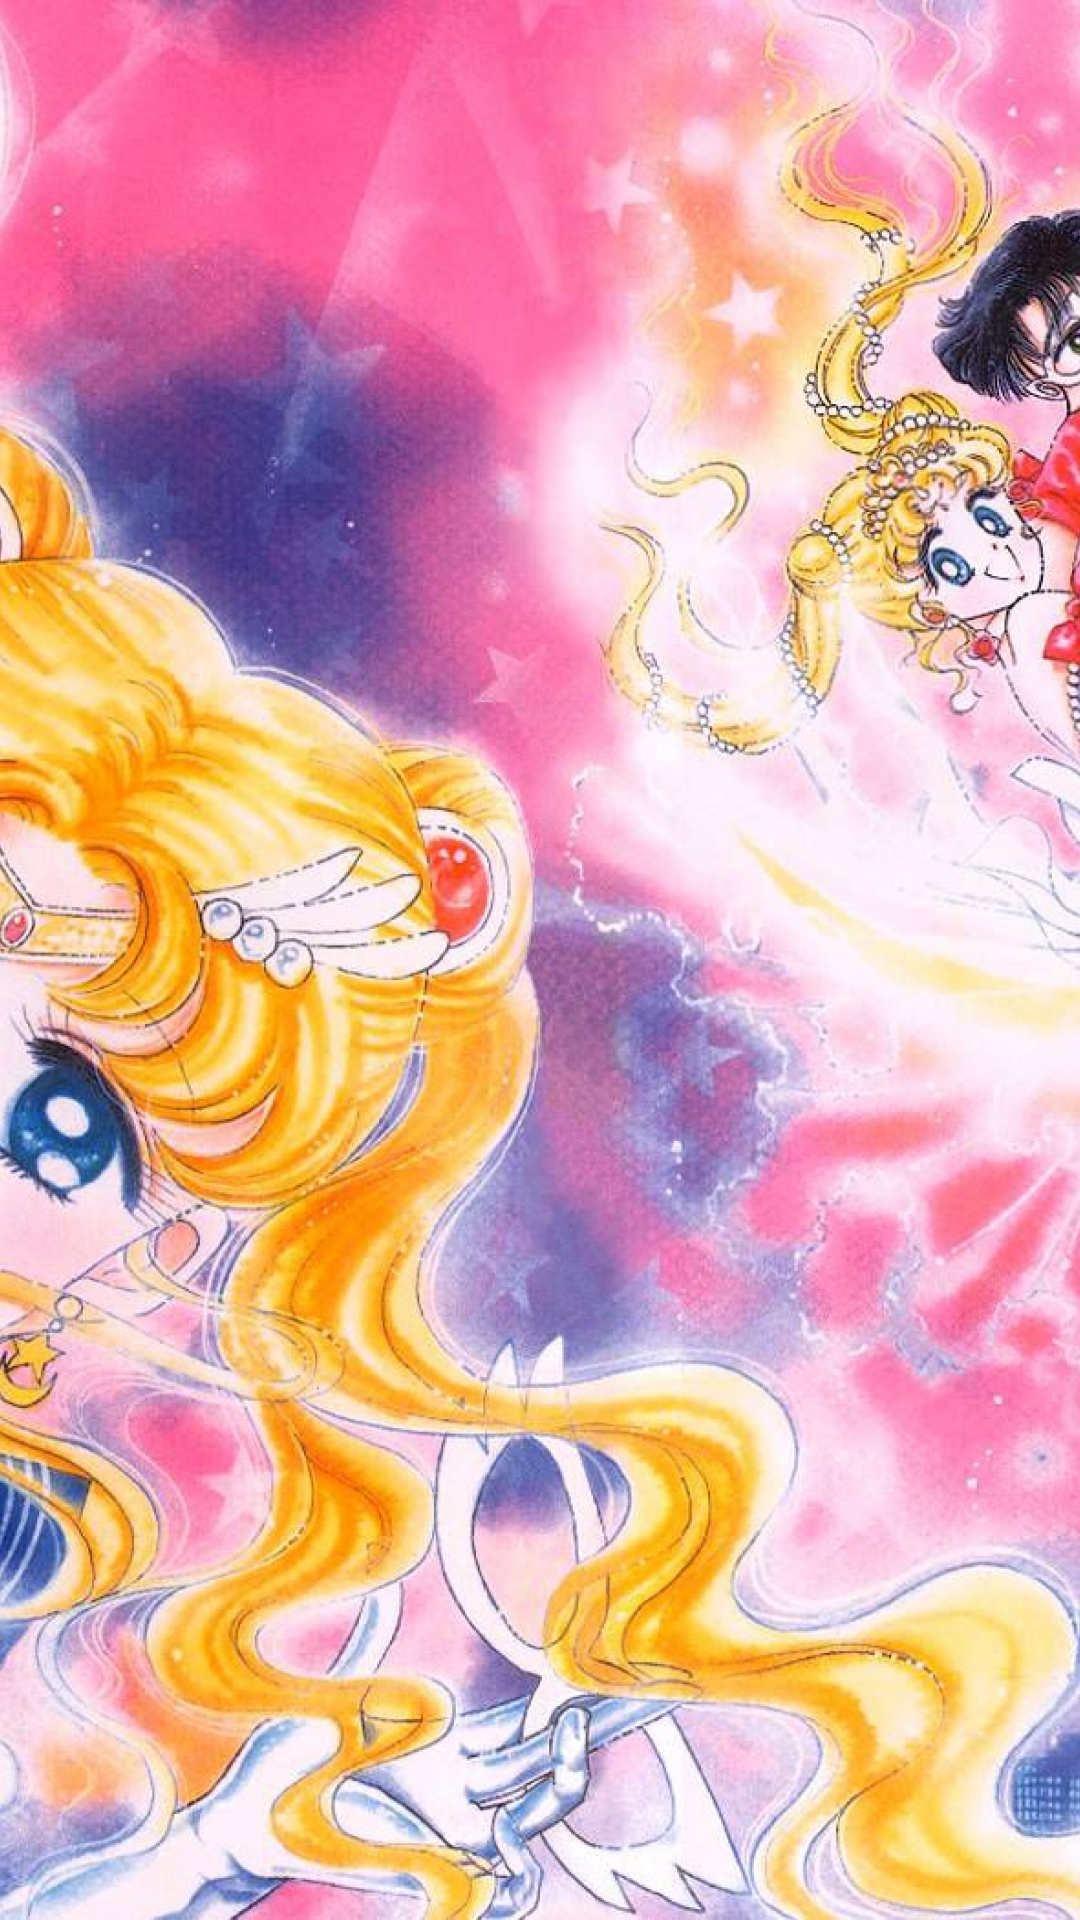 X Iphone 5 Sailor Moon 284496 Hd Wallpaper